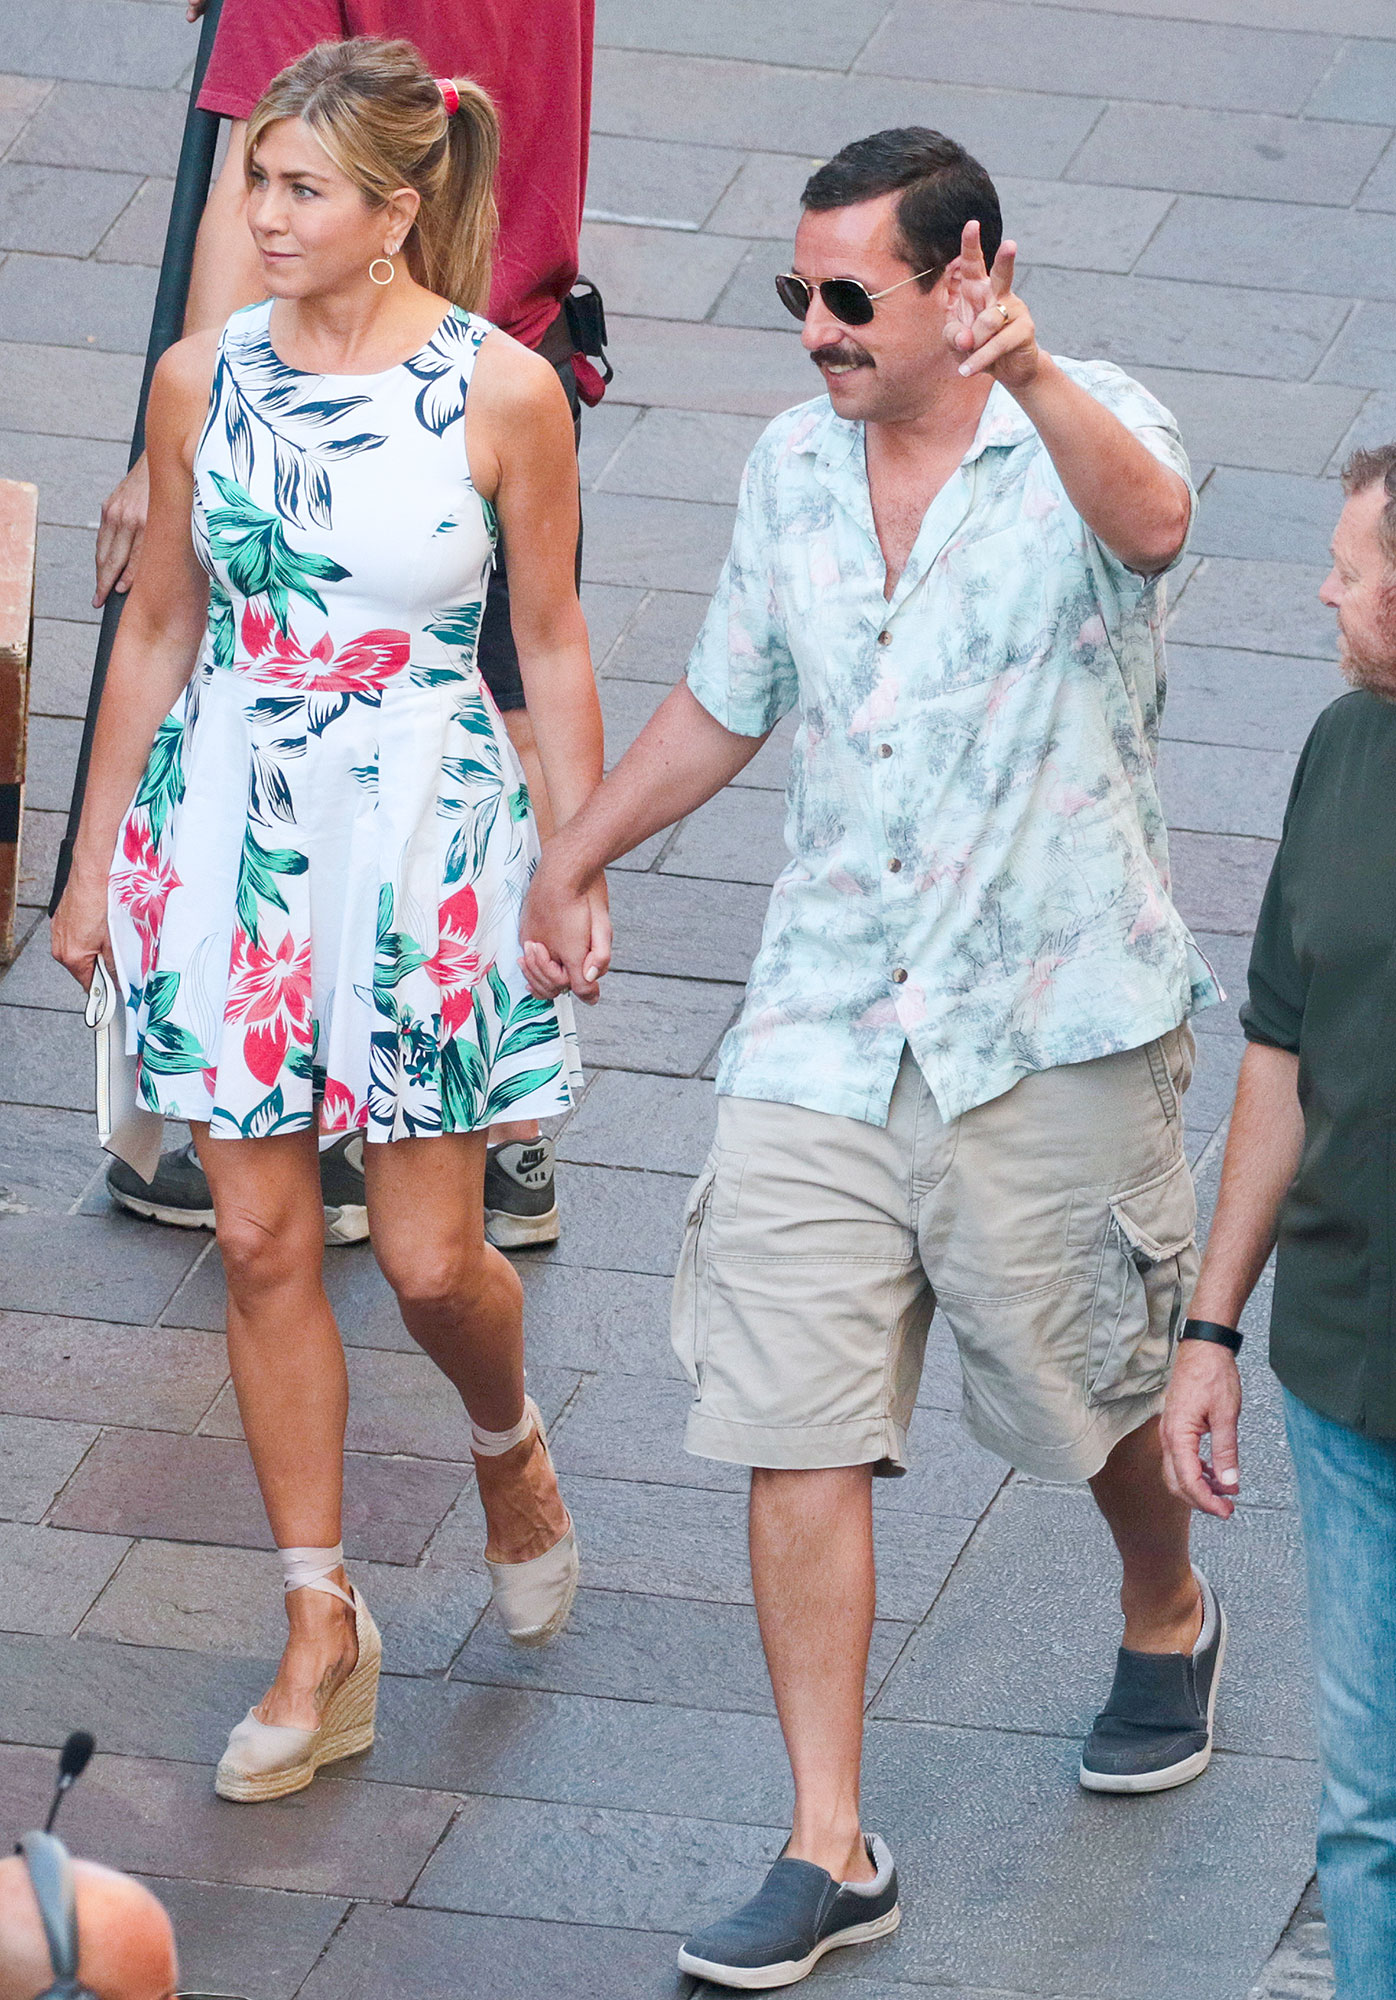 Jennifer Aniston and Adam Sandler are seen on the set of Murder Mystery in Milan, Italy.